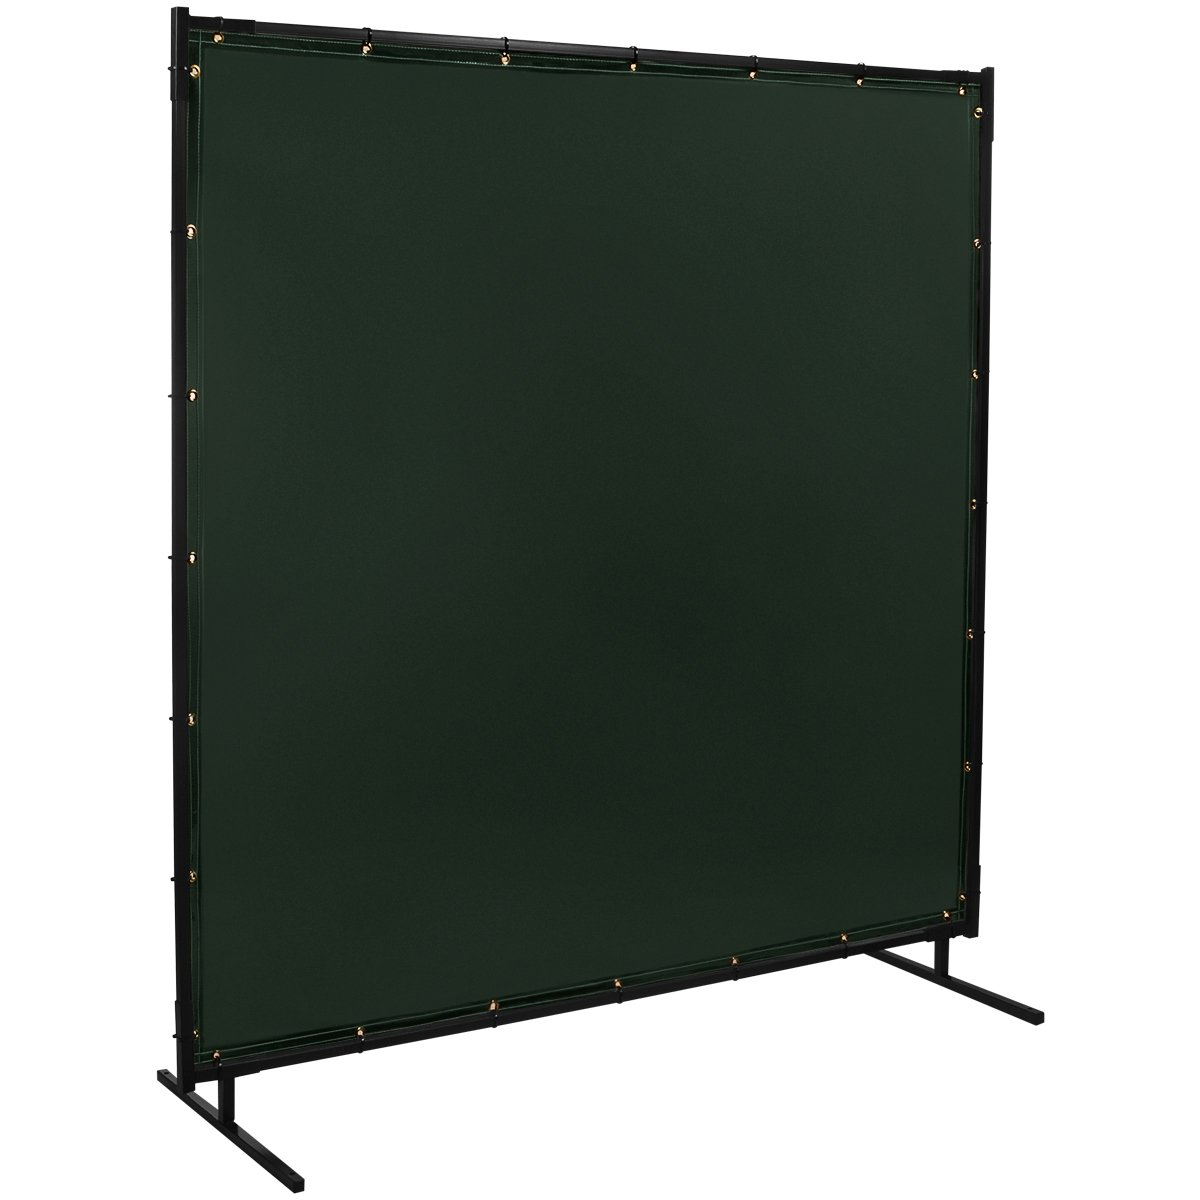 Steiner 533-6X8 Protect-O-Screen Classic Welding Screen with Flame Retardant 14 Mil Tinted Transparent Vinyl Curtain, Green, 6' x 8' 6' x 8' ERB